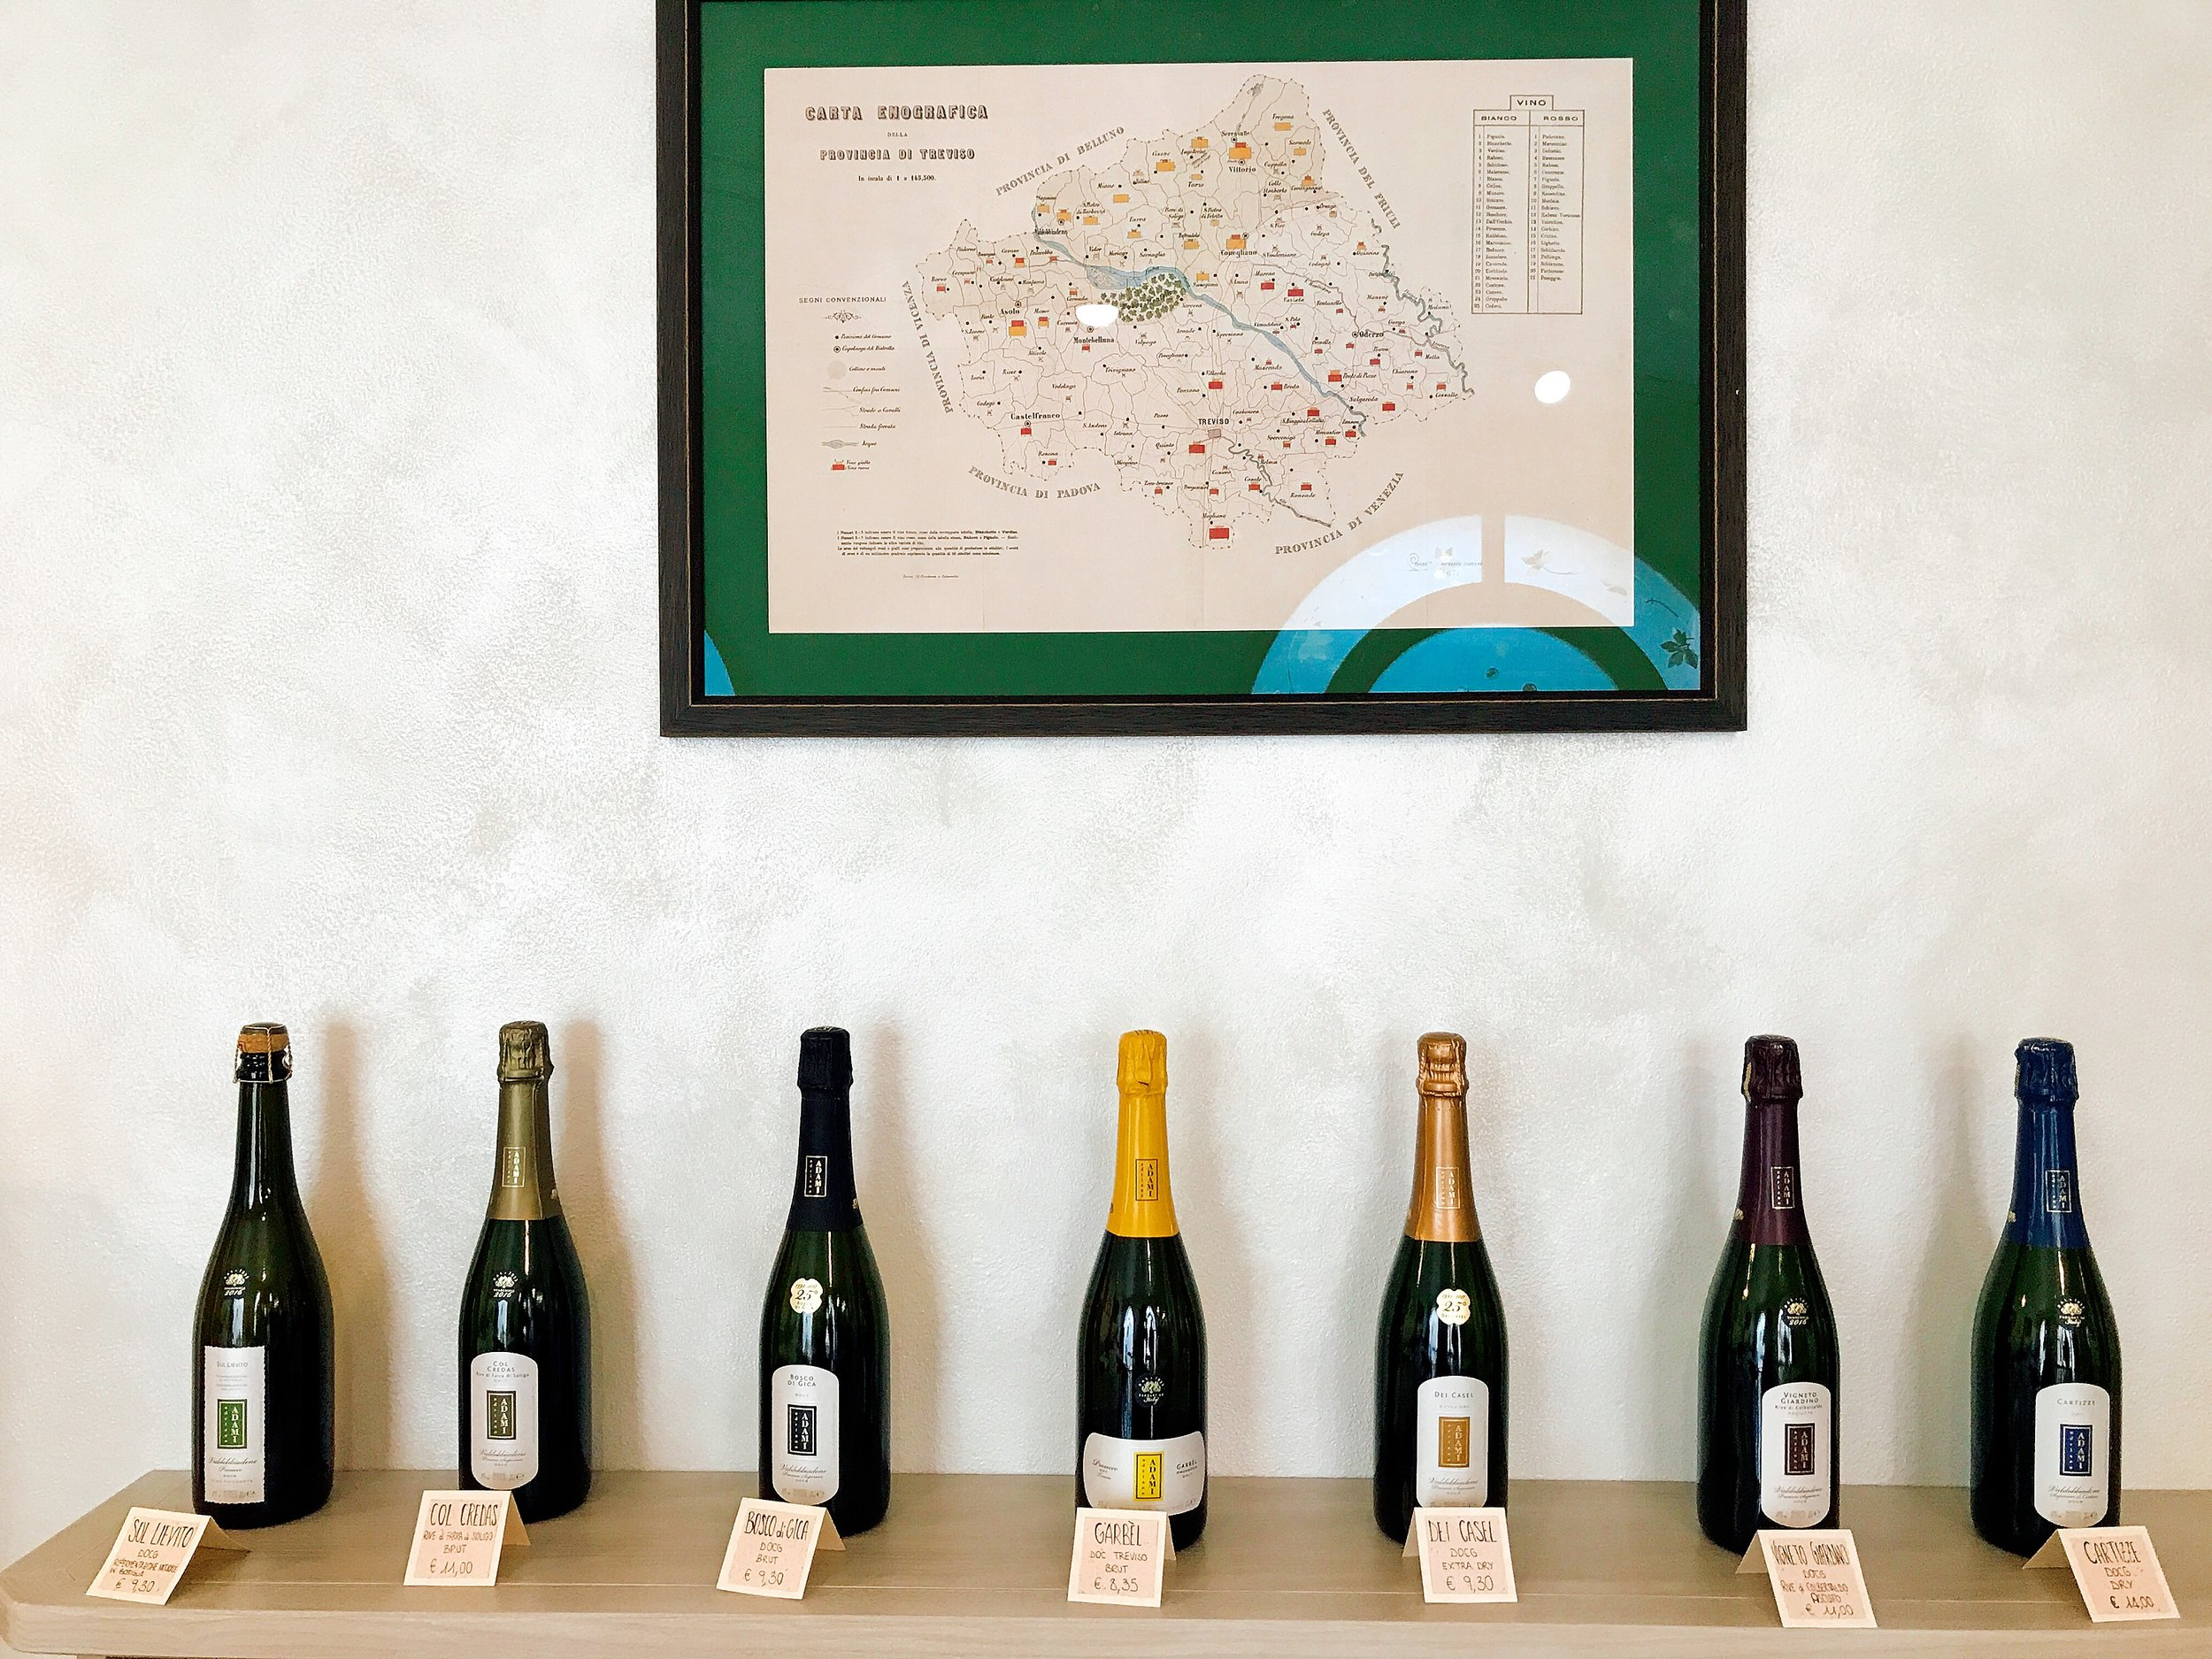 Adami has a variety of bubbly offerings